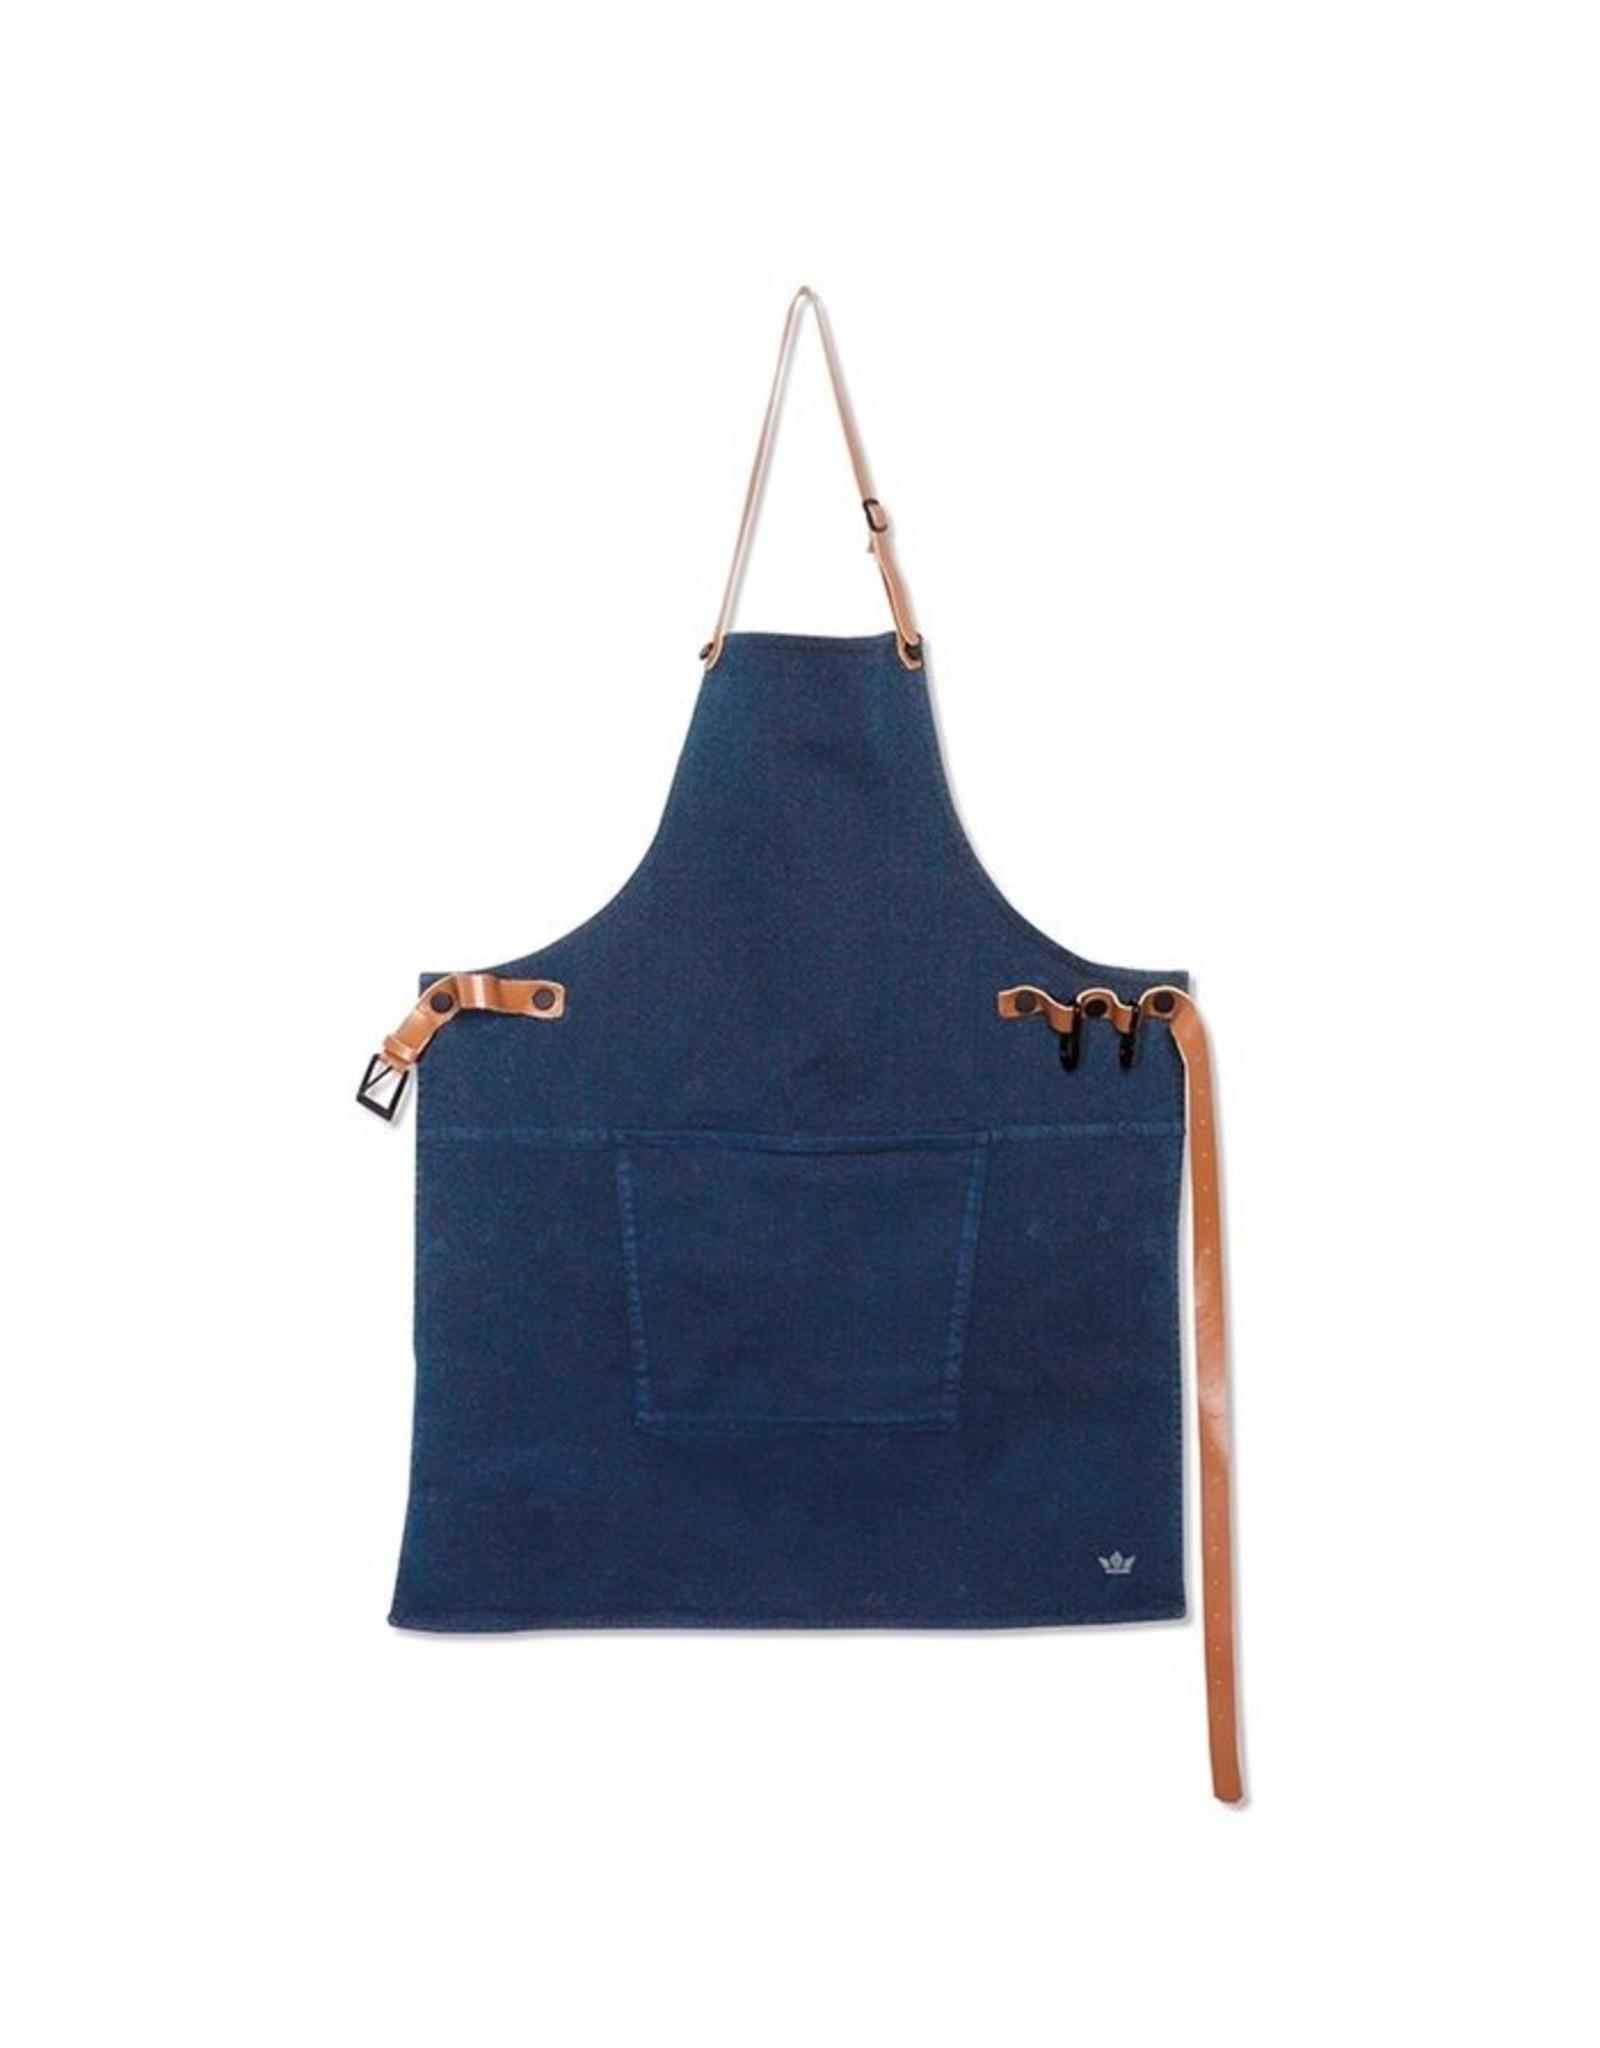 Dutchdeluxe BBQ-STYLE APRONS / CANVAS + LEATHER STRAPS / DARK BLUE